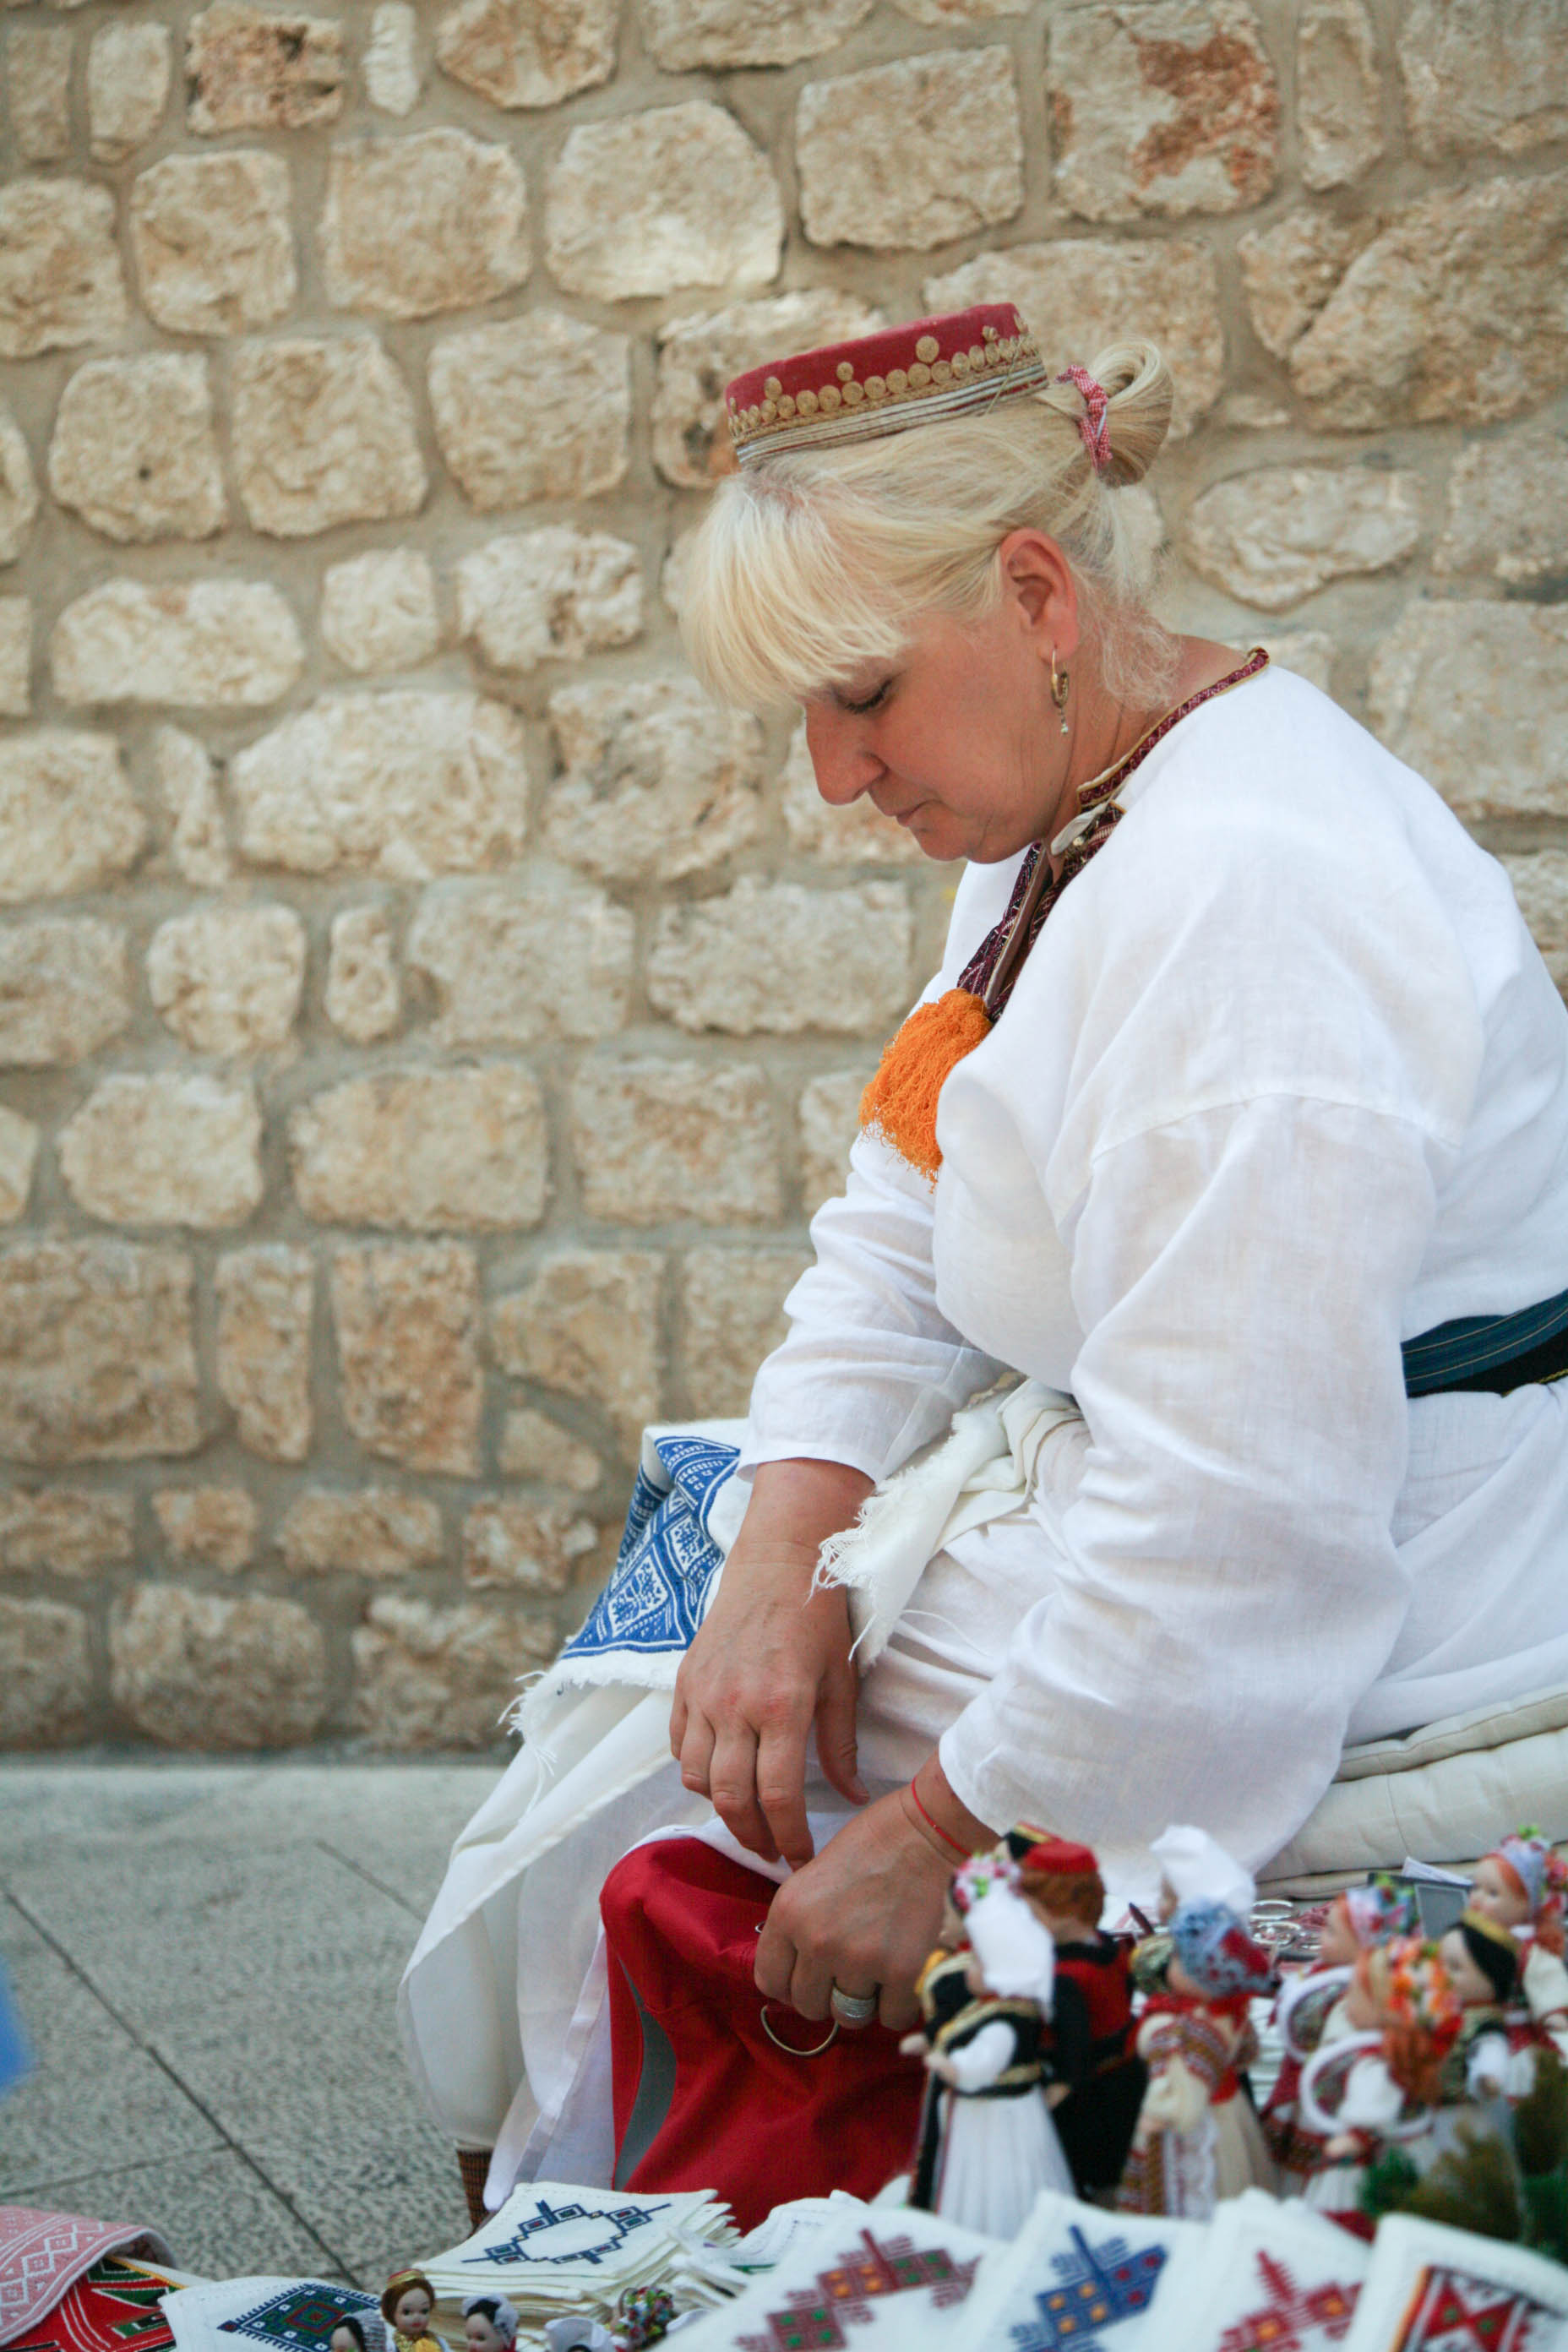 This lady was sewing on the street.